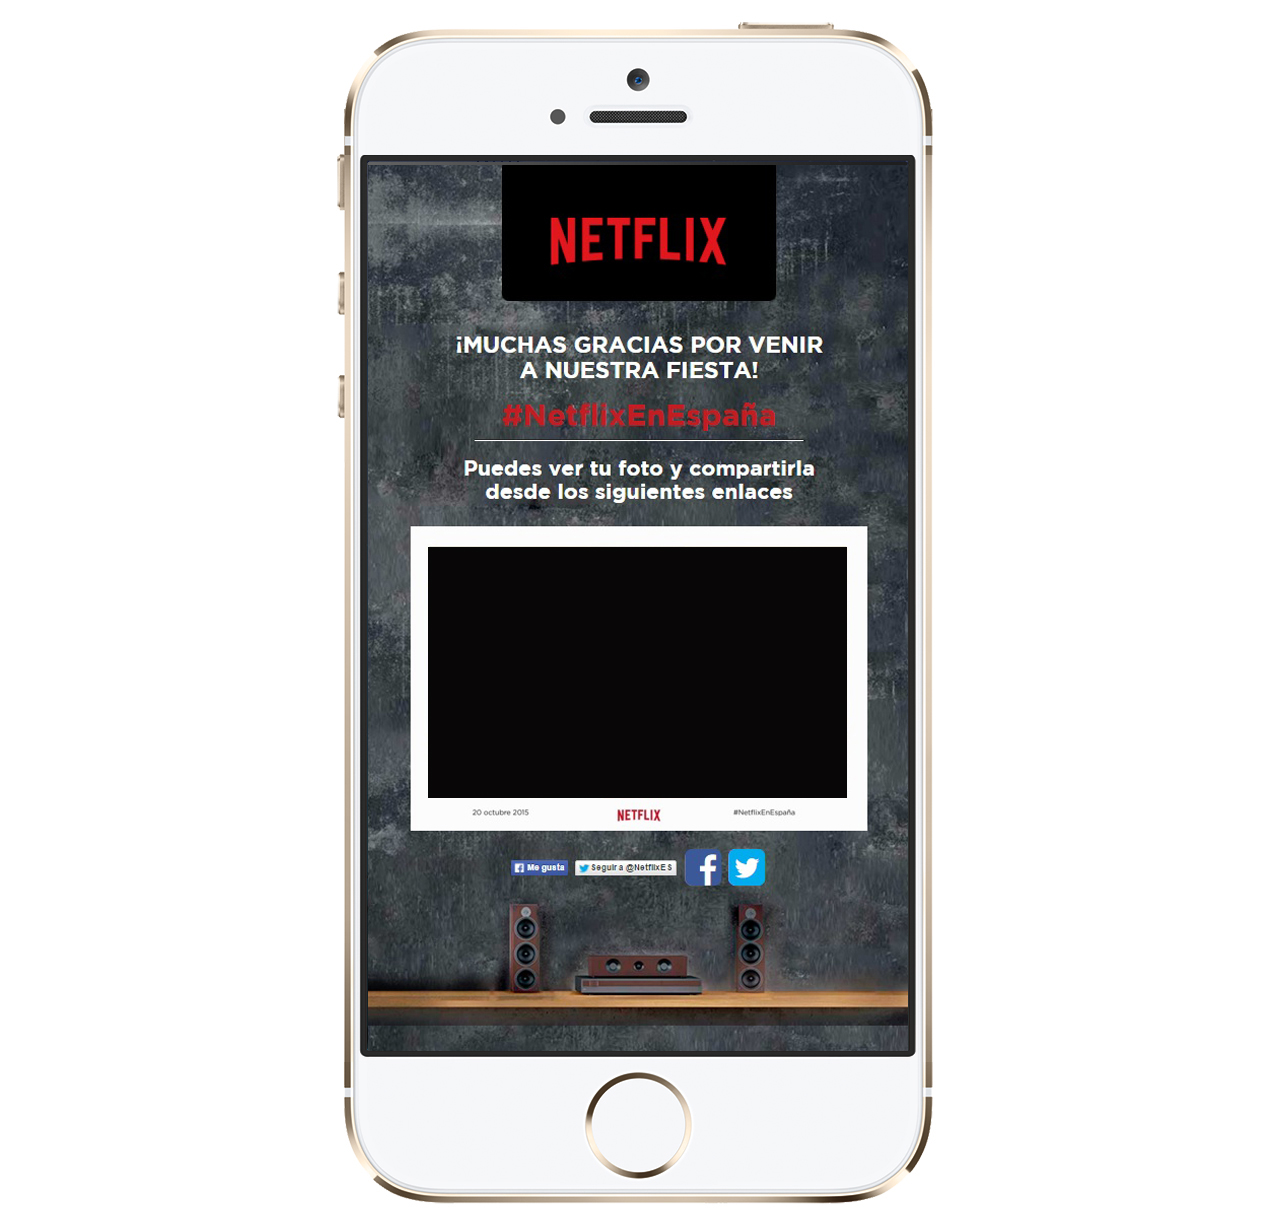 iphone_Netflix_generico